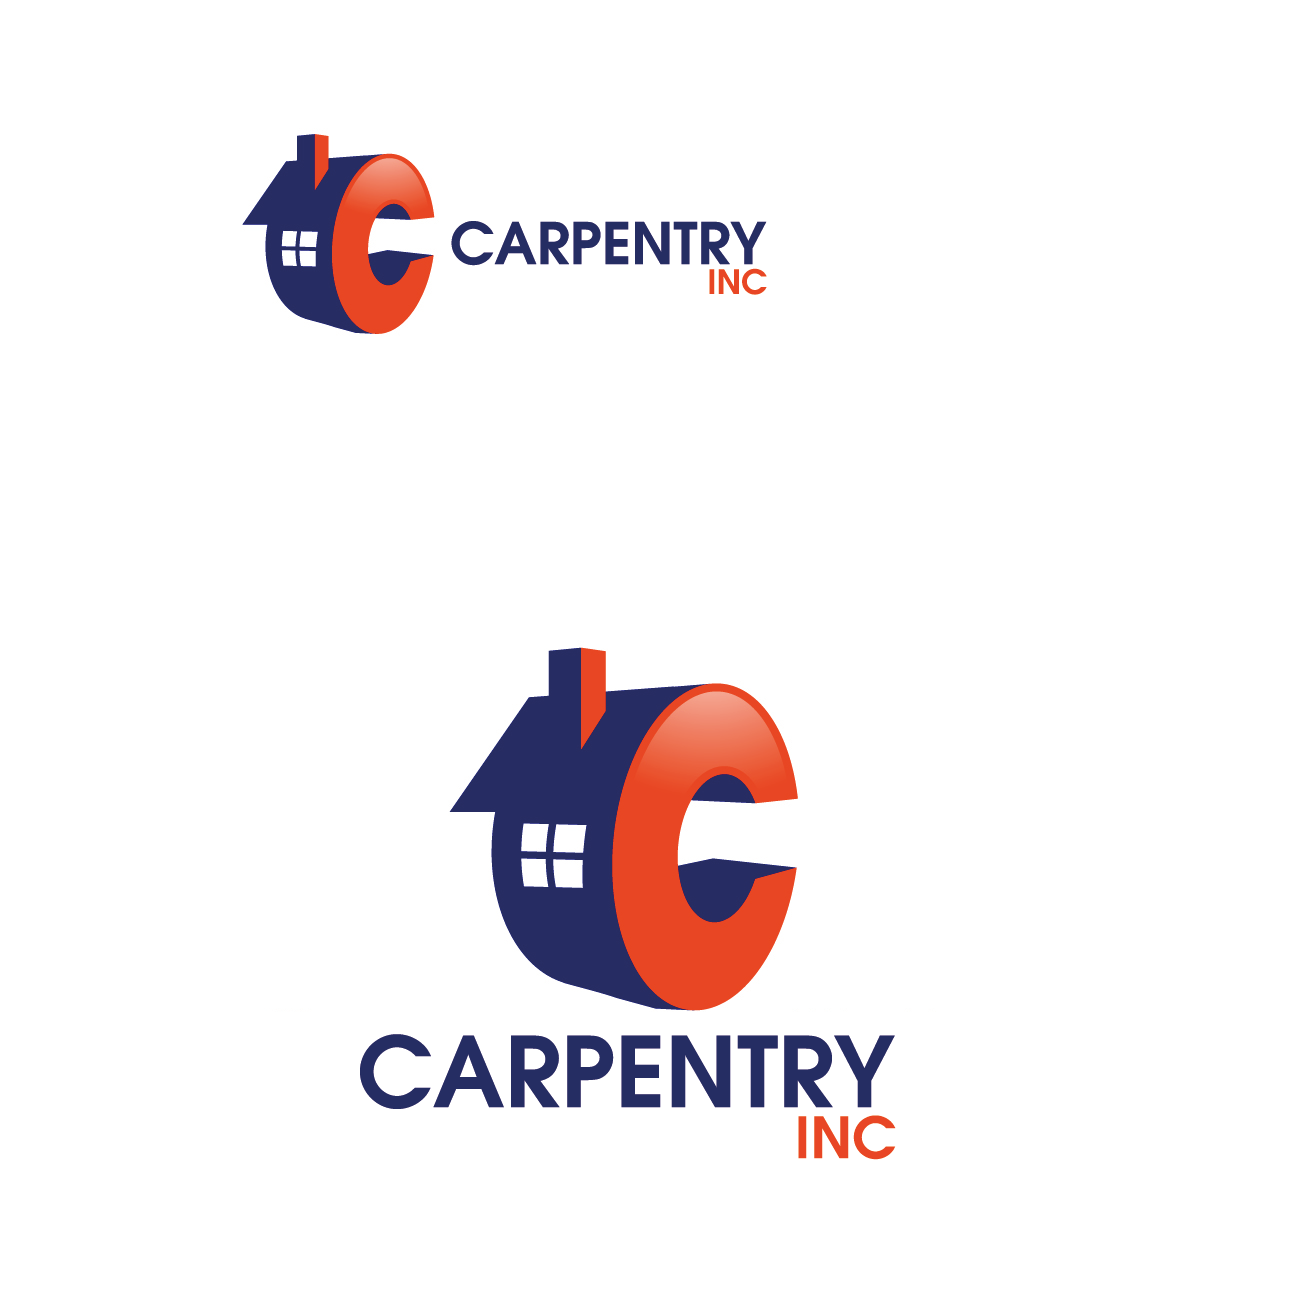 Logo Design by Private User - Entry No. 106 in the Logo Design Contest Creative Logo Design for Carpentry inc..